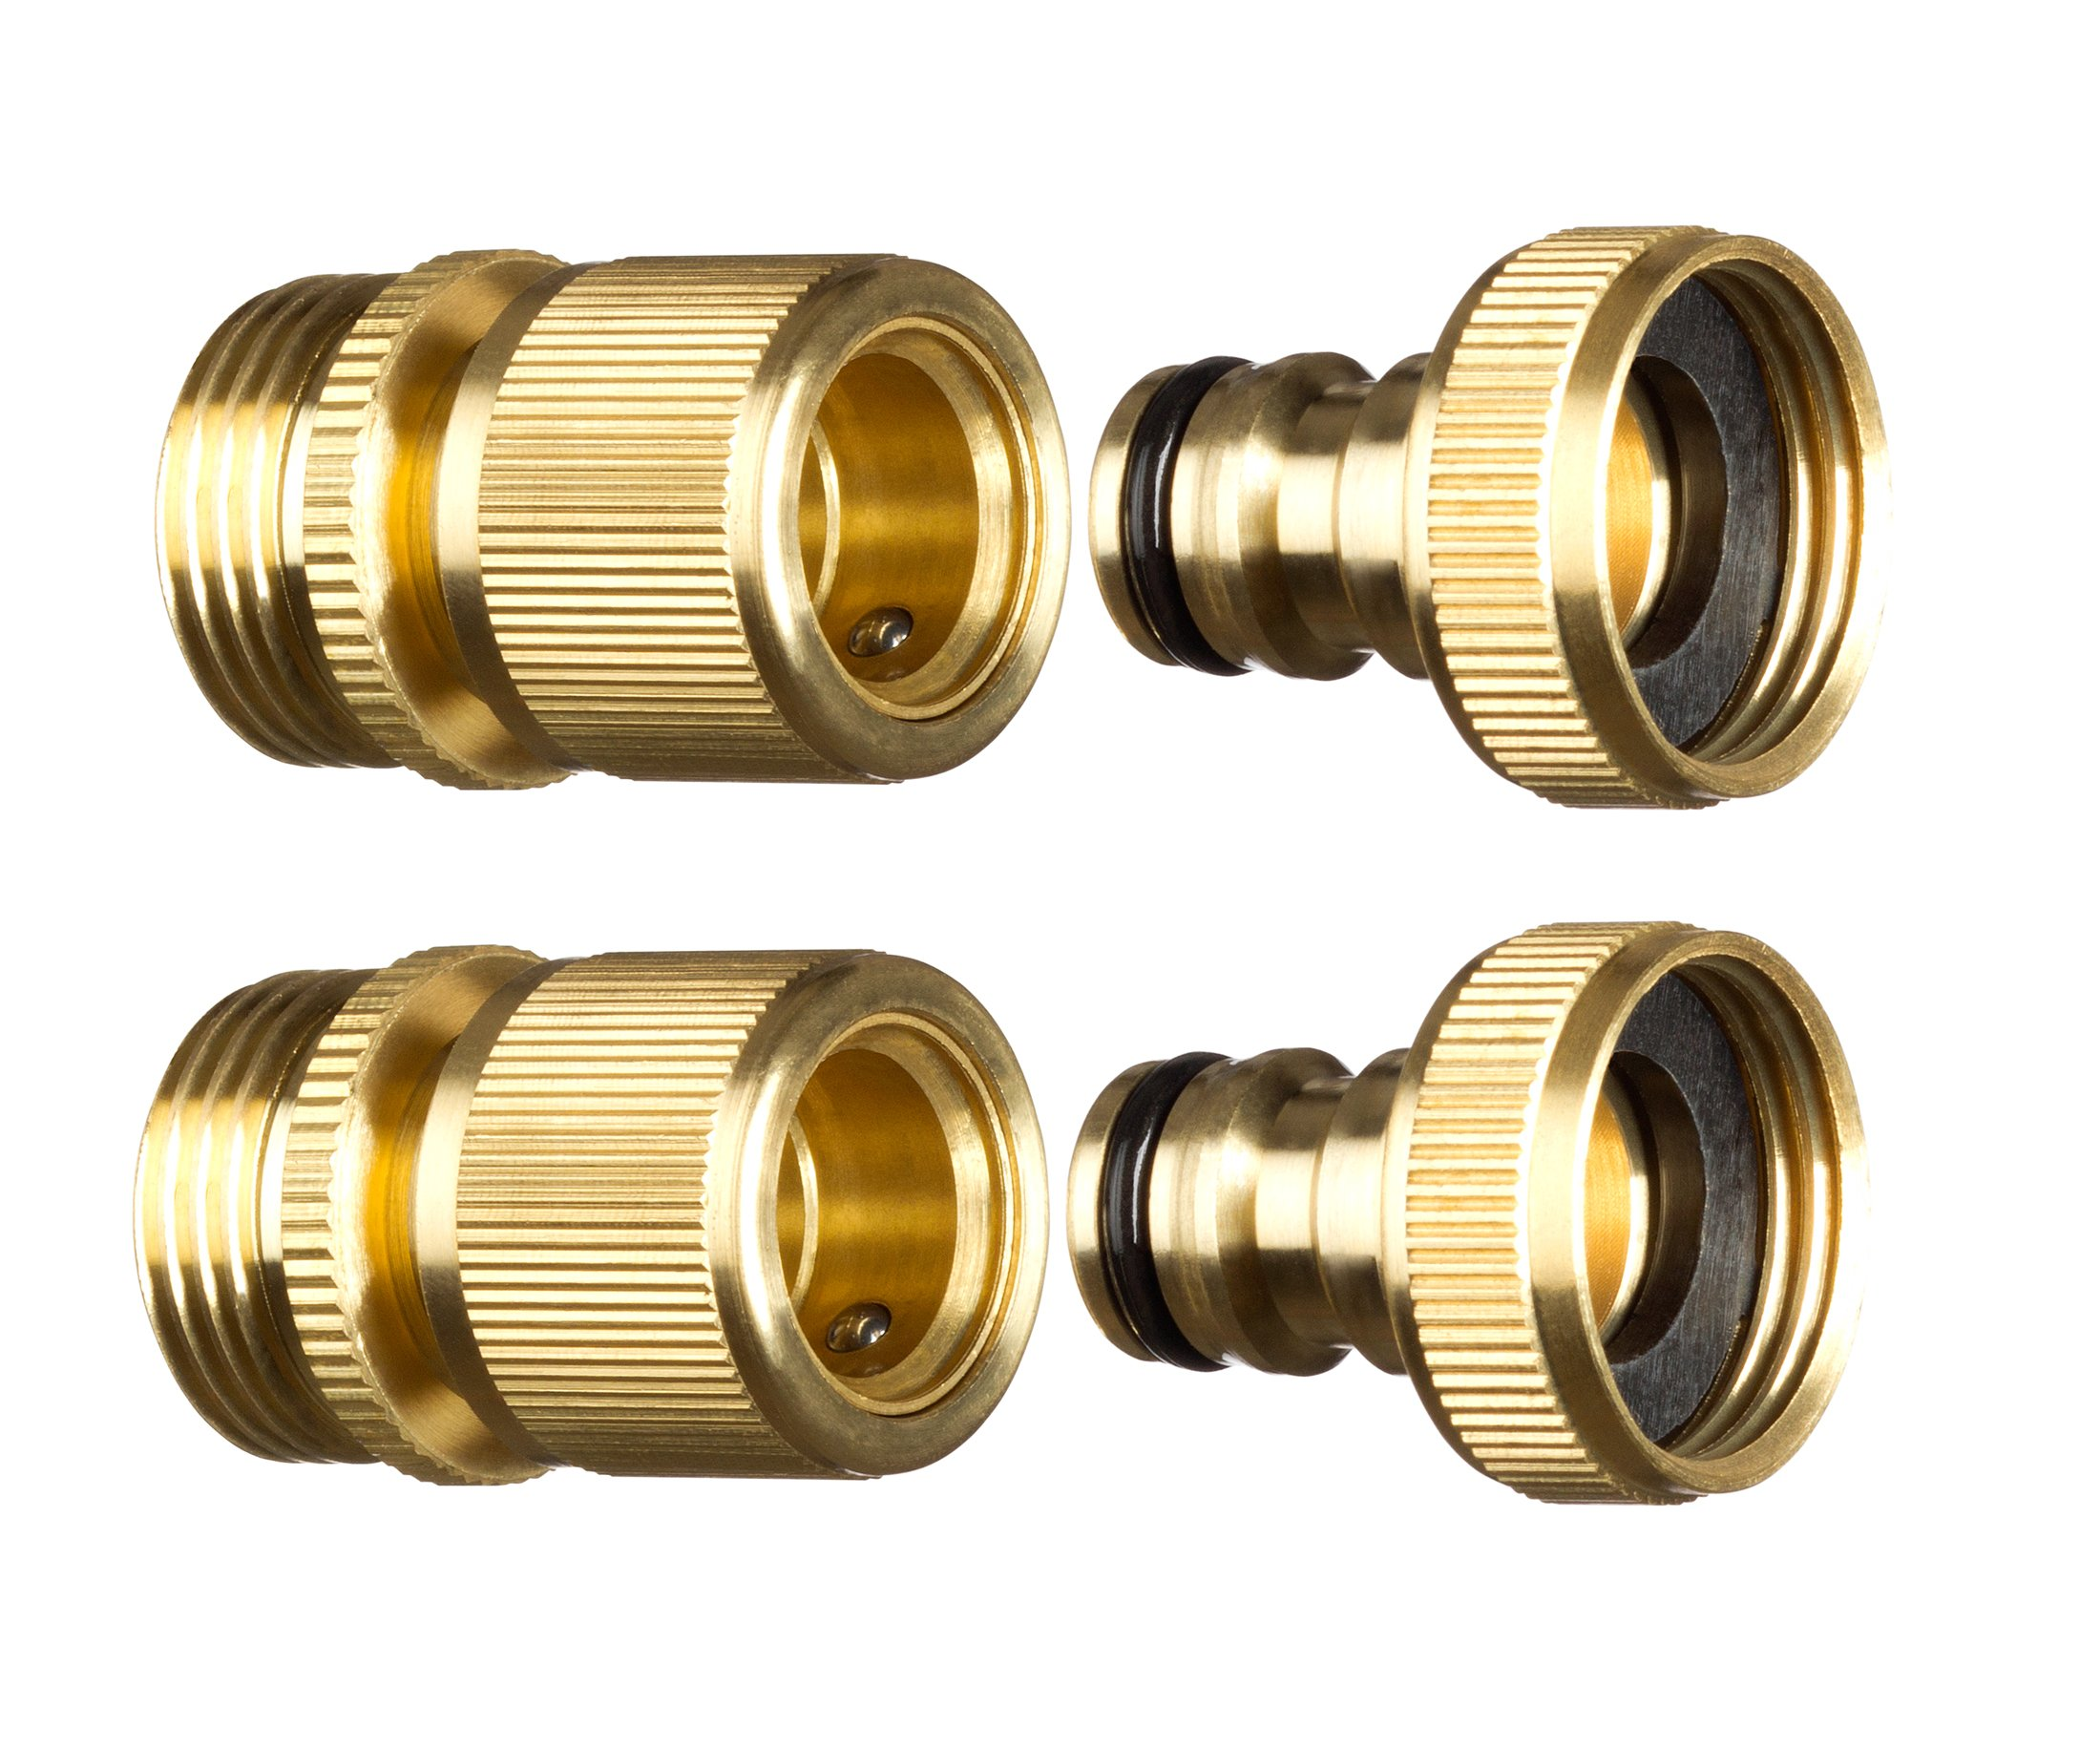 New Garden Hose Quick Connector. ¾ inch GHT Brass Easy Connect Fitting 4-Piece Set Male and Female